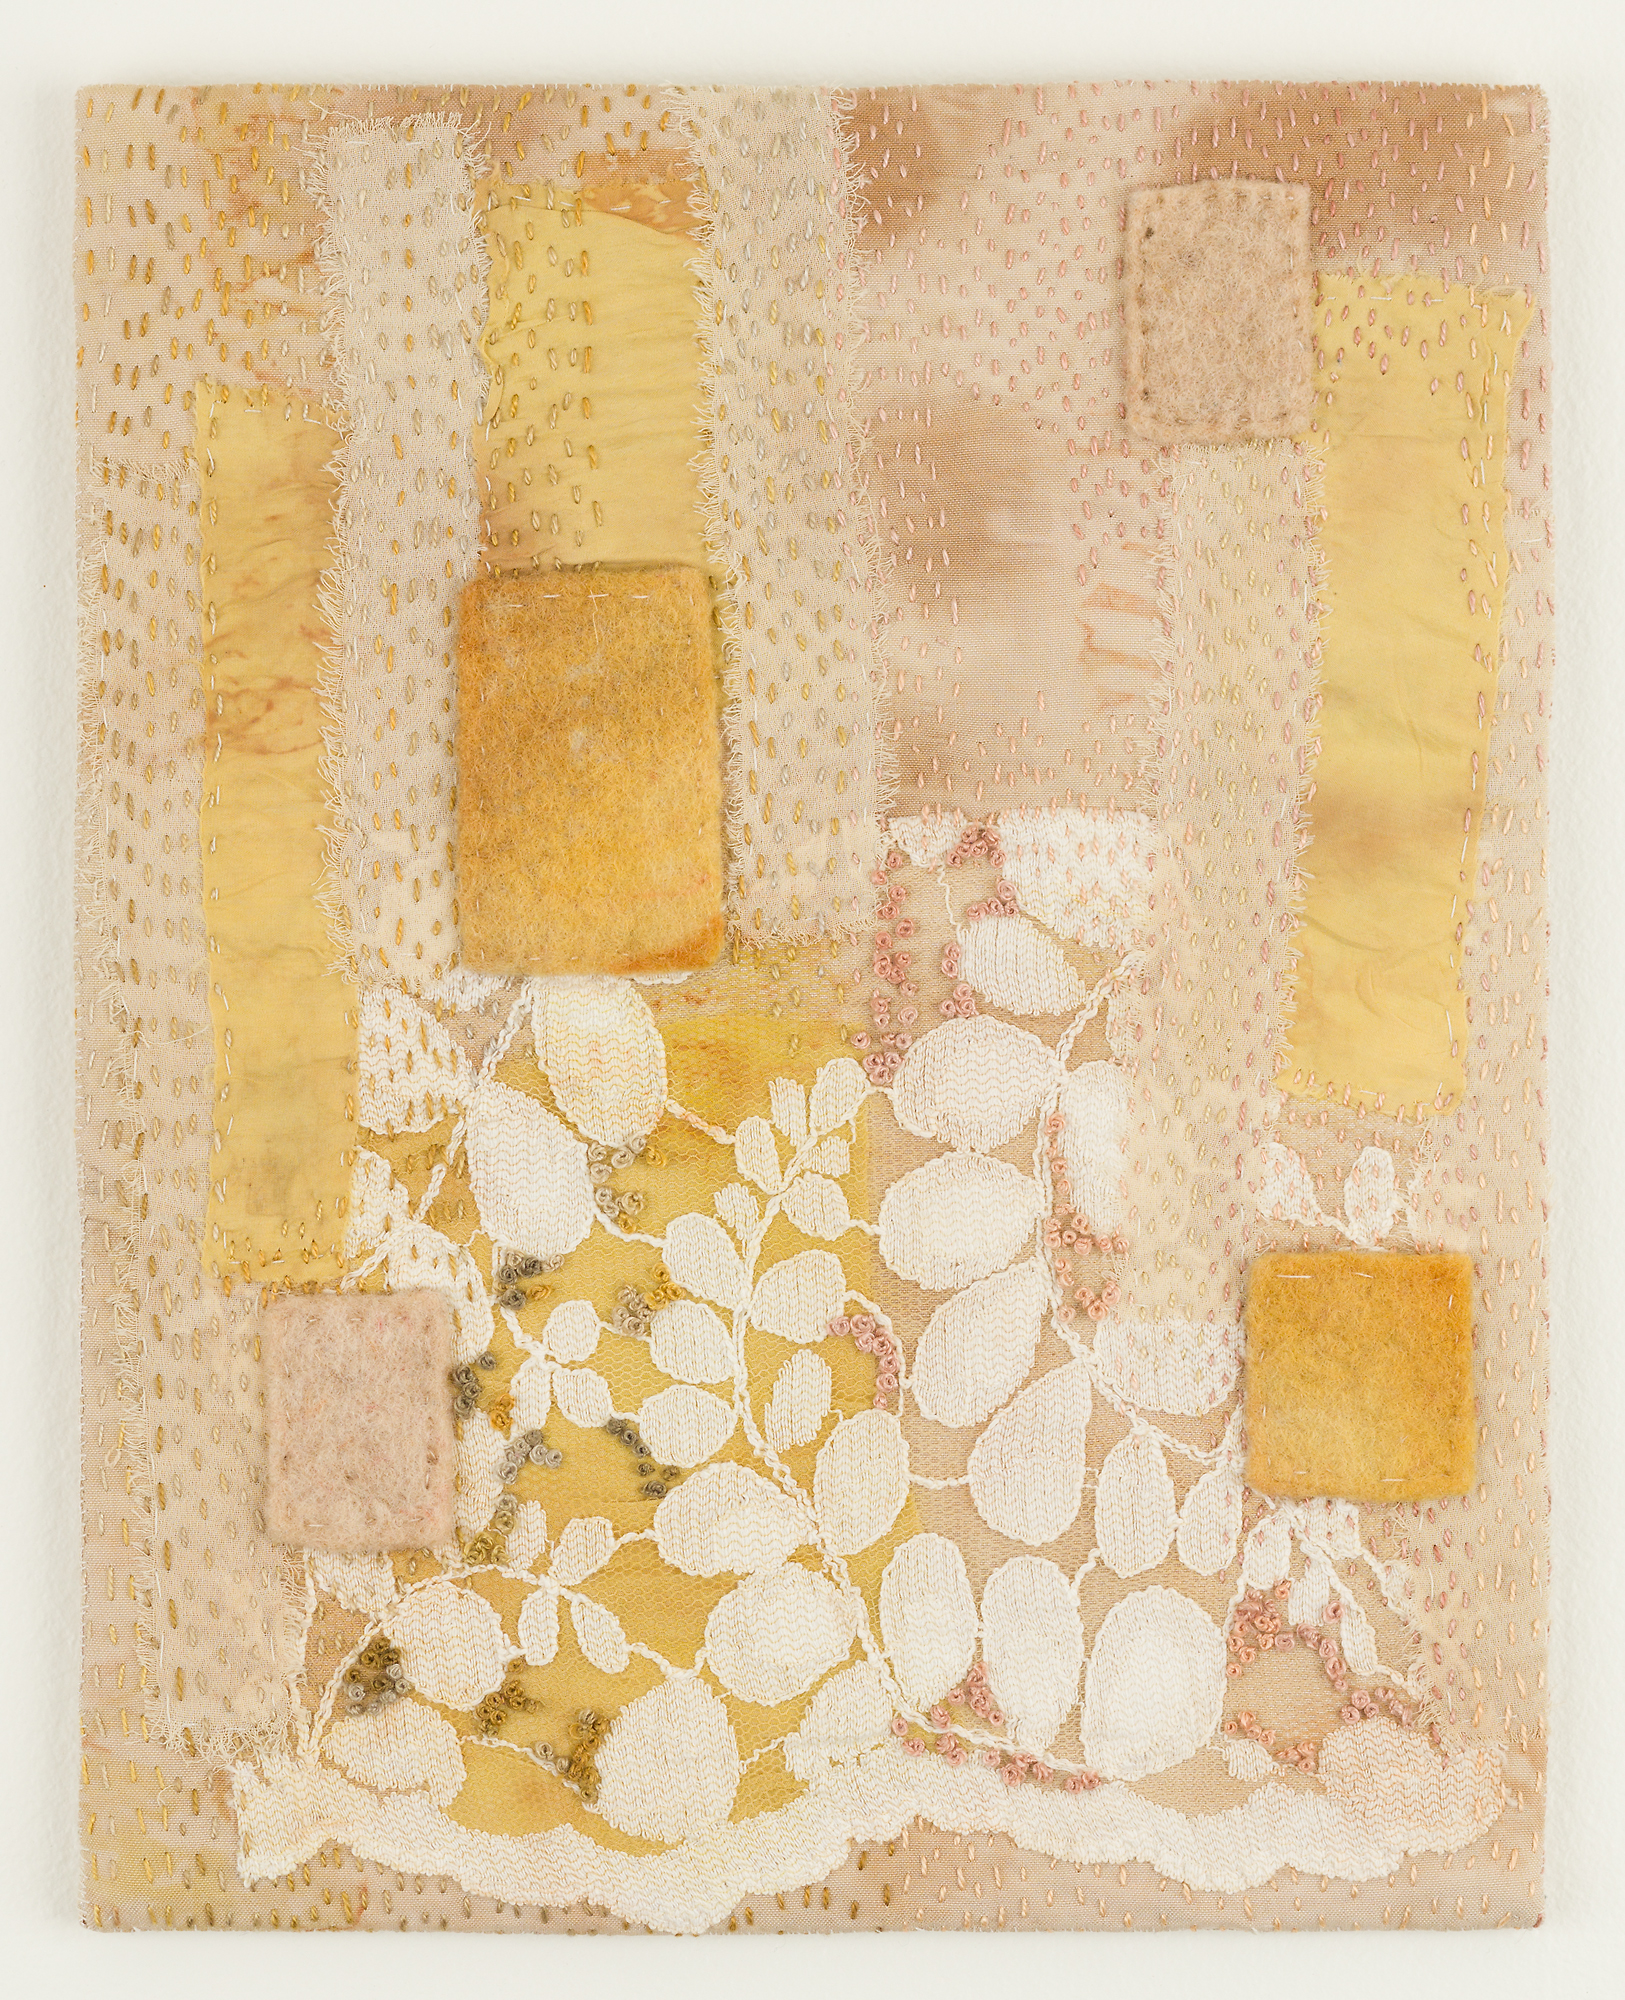 Layers -  Natural dyes leave a lasting imprint on the cloth preserving layers of experience. The concept behind this work is to expose interconnections, making the intimate relationship between fibers and plants visible.